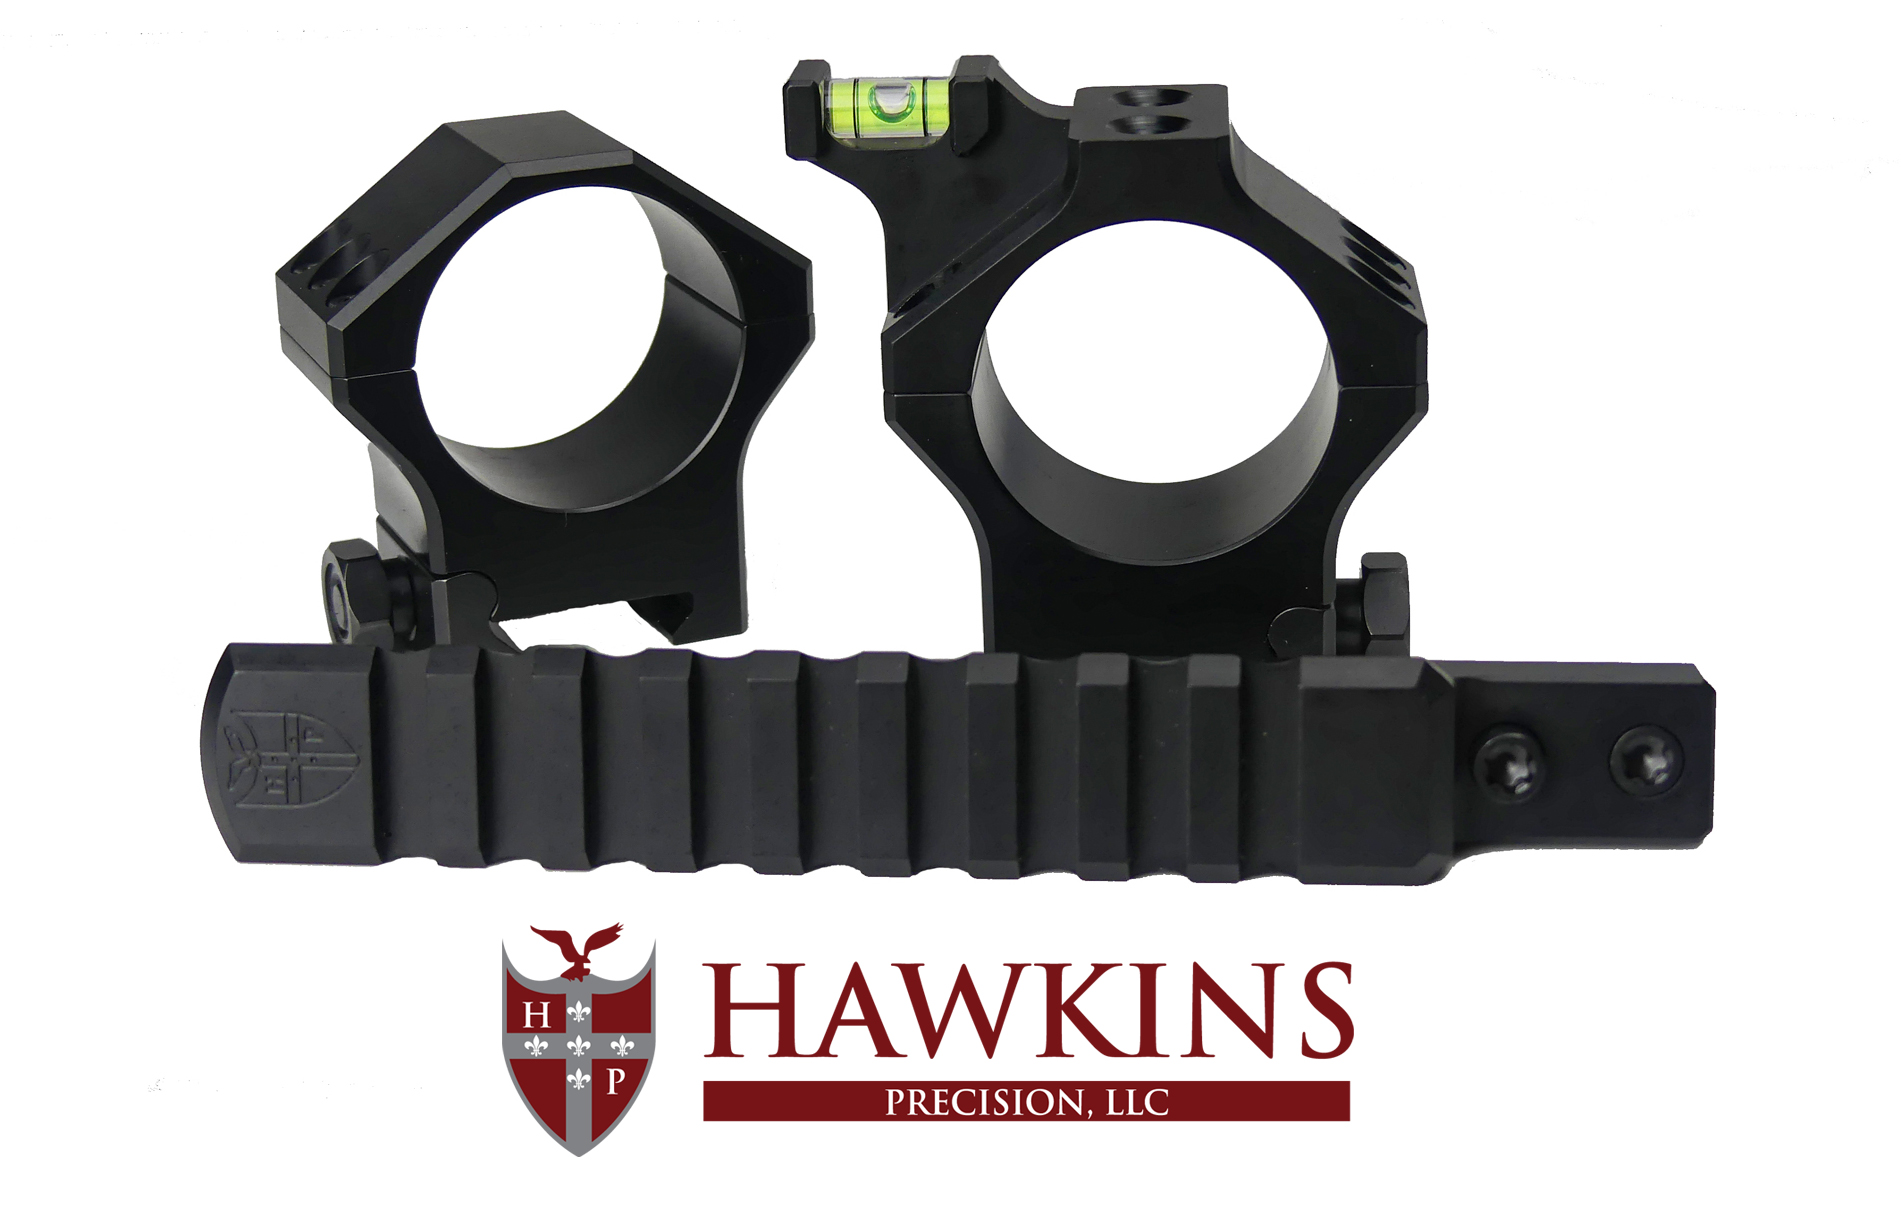 Heavy Tactical Rings